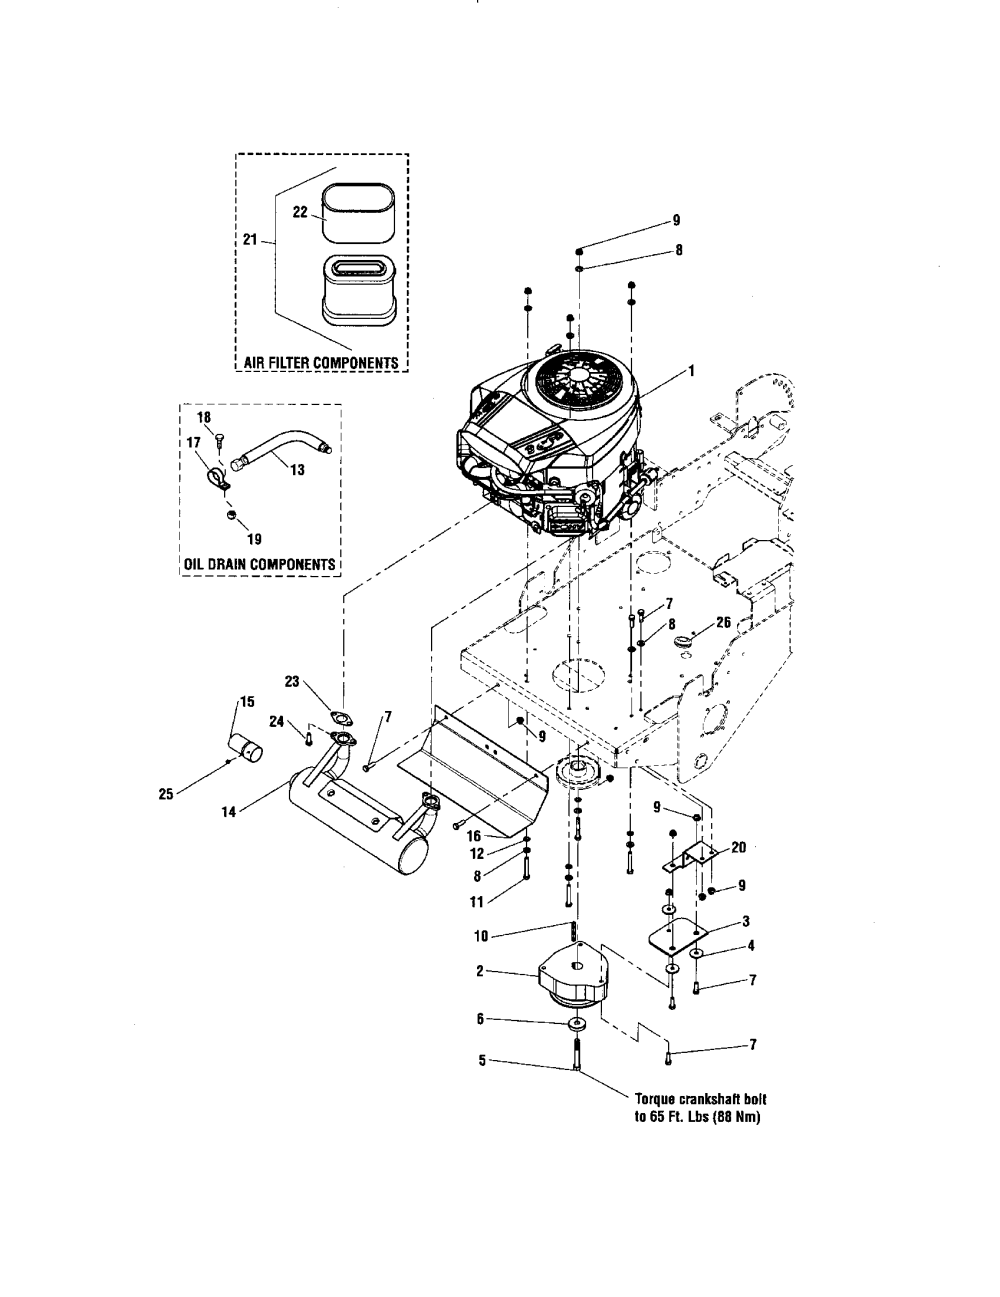 medium resolution of fuel system parts diagram parts list for model 19fb00100041 briggs fuel pump carburetor diagram and parts list for briggs stratton all